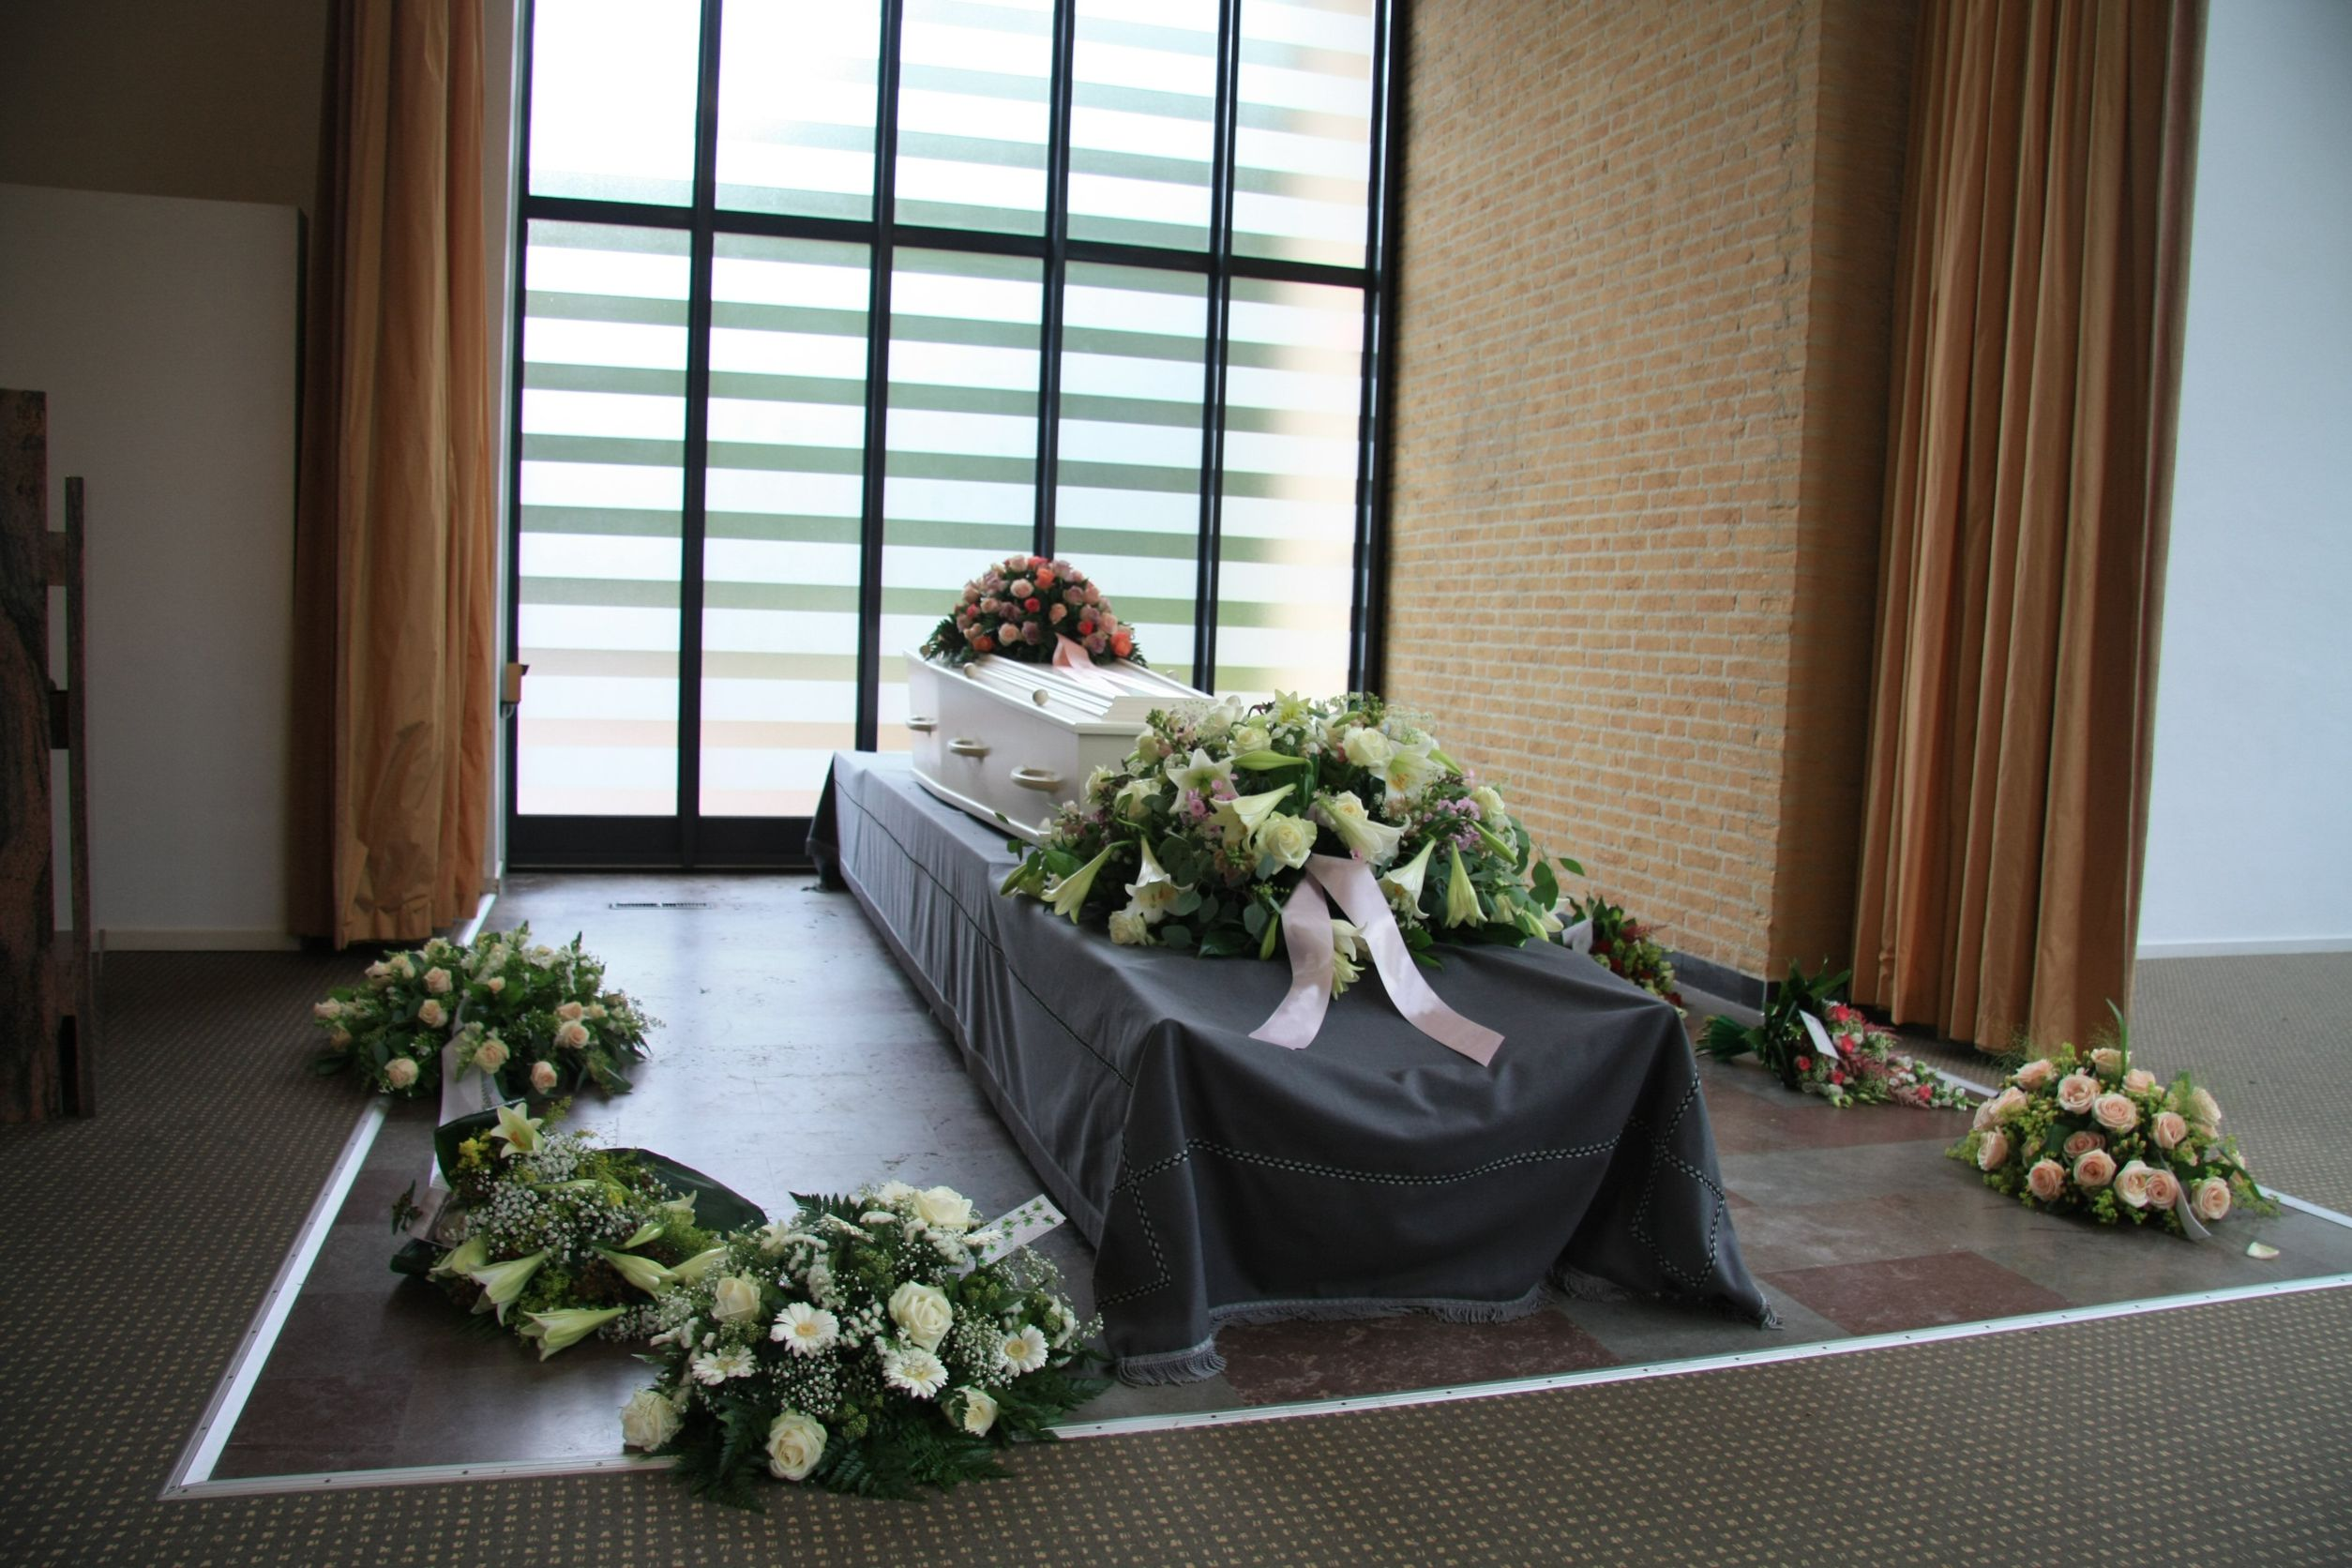 How to Sue a Florida Funeral Home for Negligence